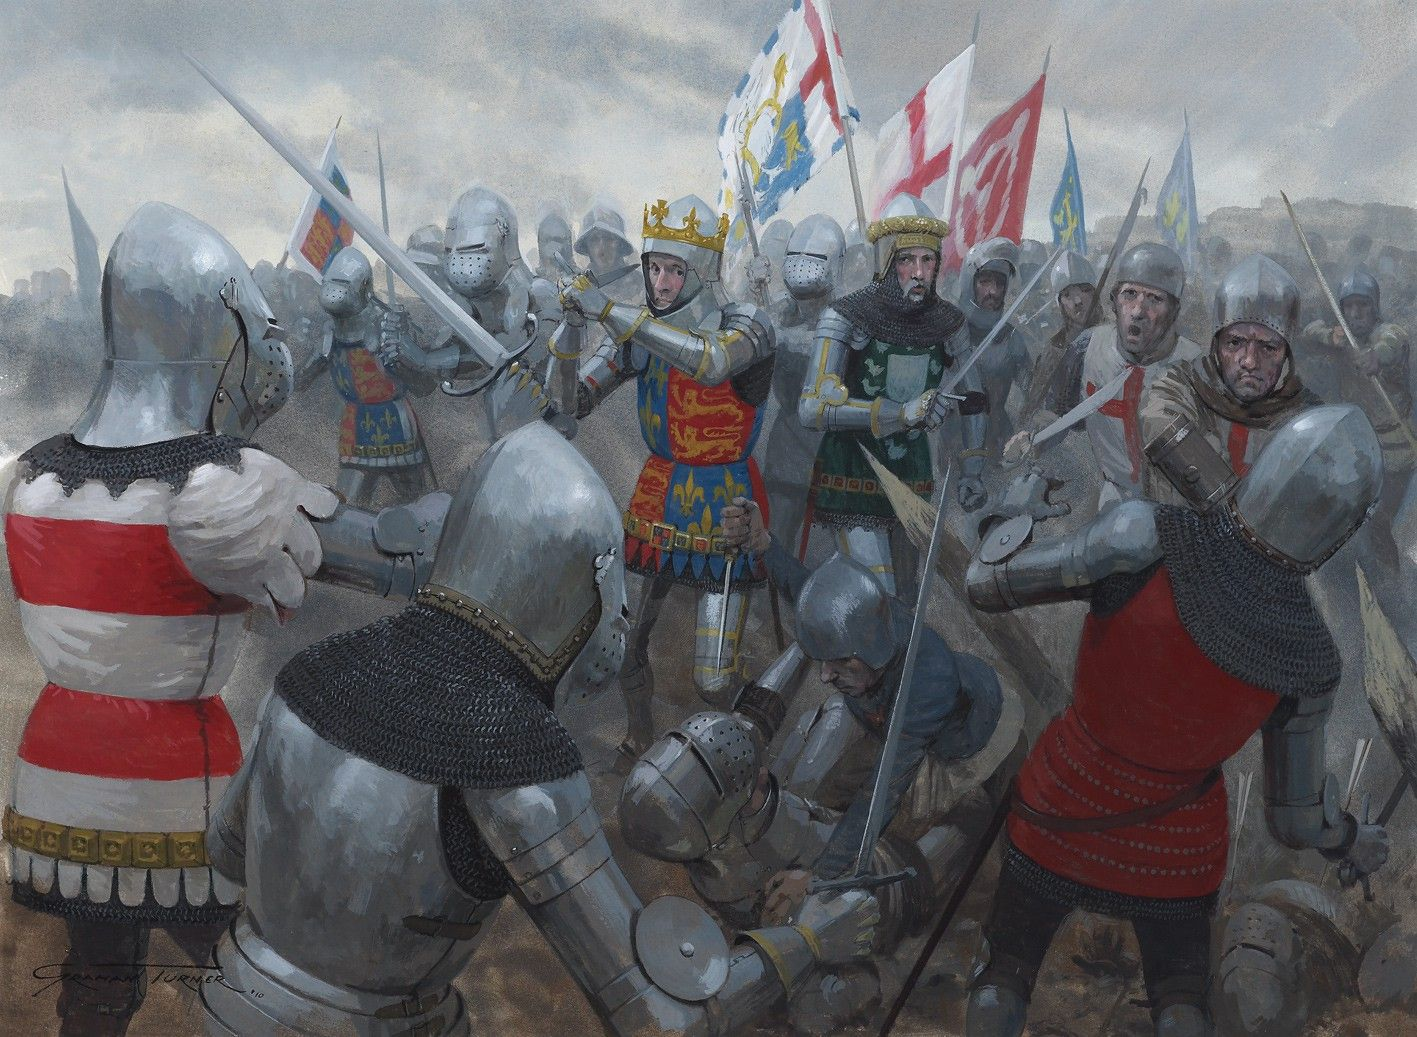 The Battle of Agincourt Revisited